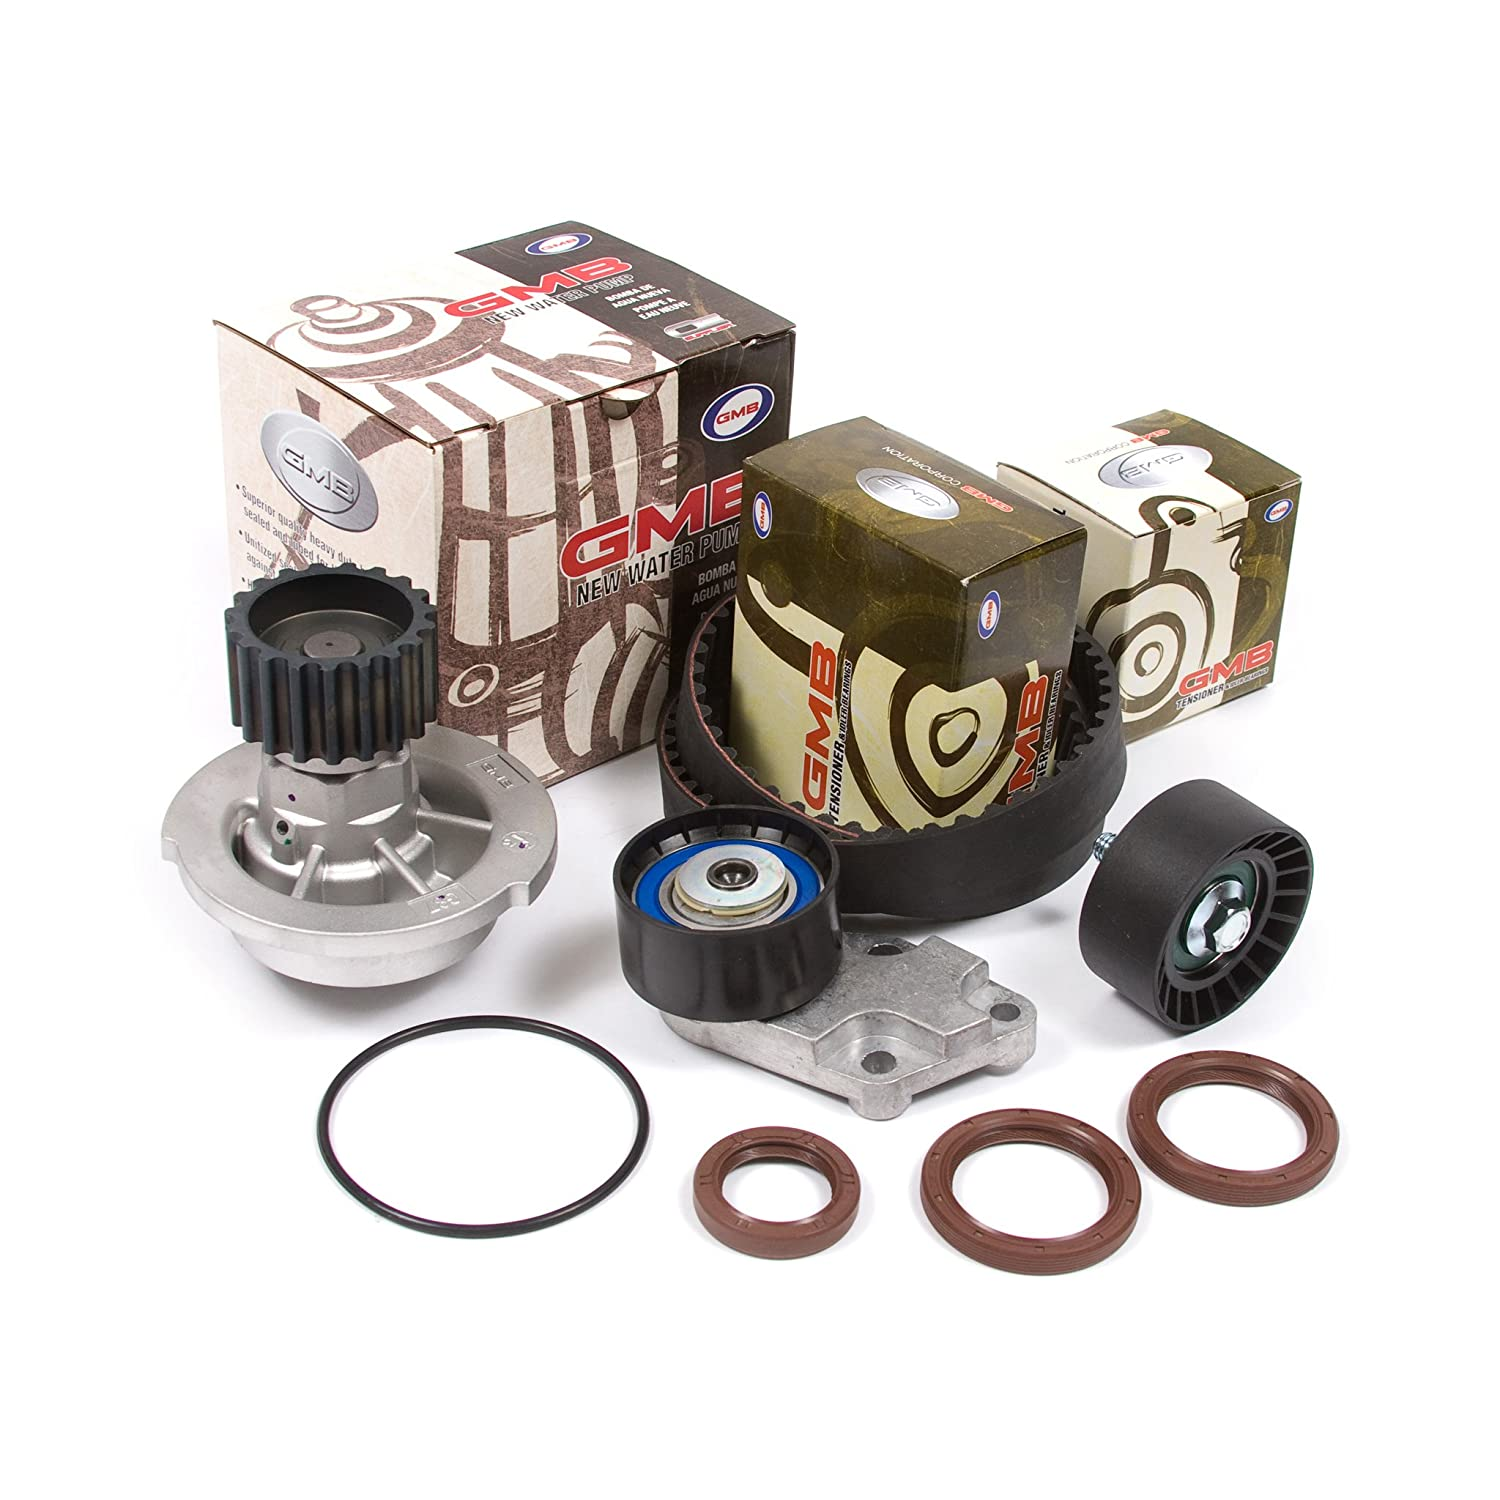 Amazon.com: Fits 04-08 Chevrolet Daewoo 1.6 DOHC 16V Timing Belt Kit GMB Water Pump: Automotive